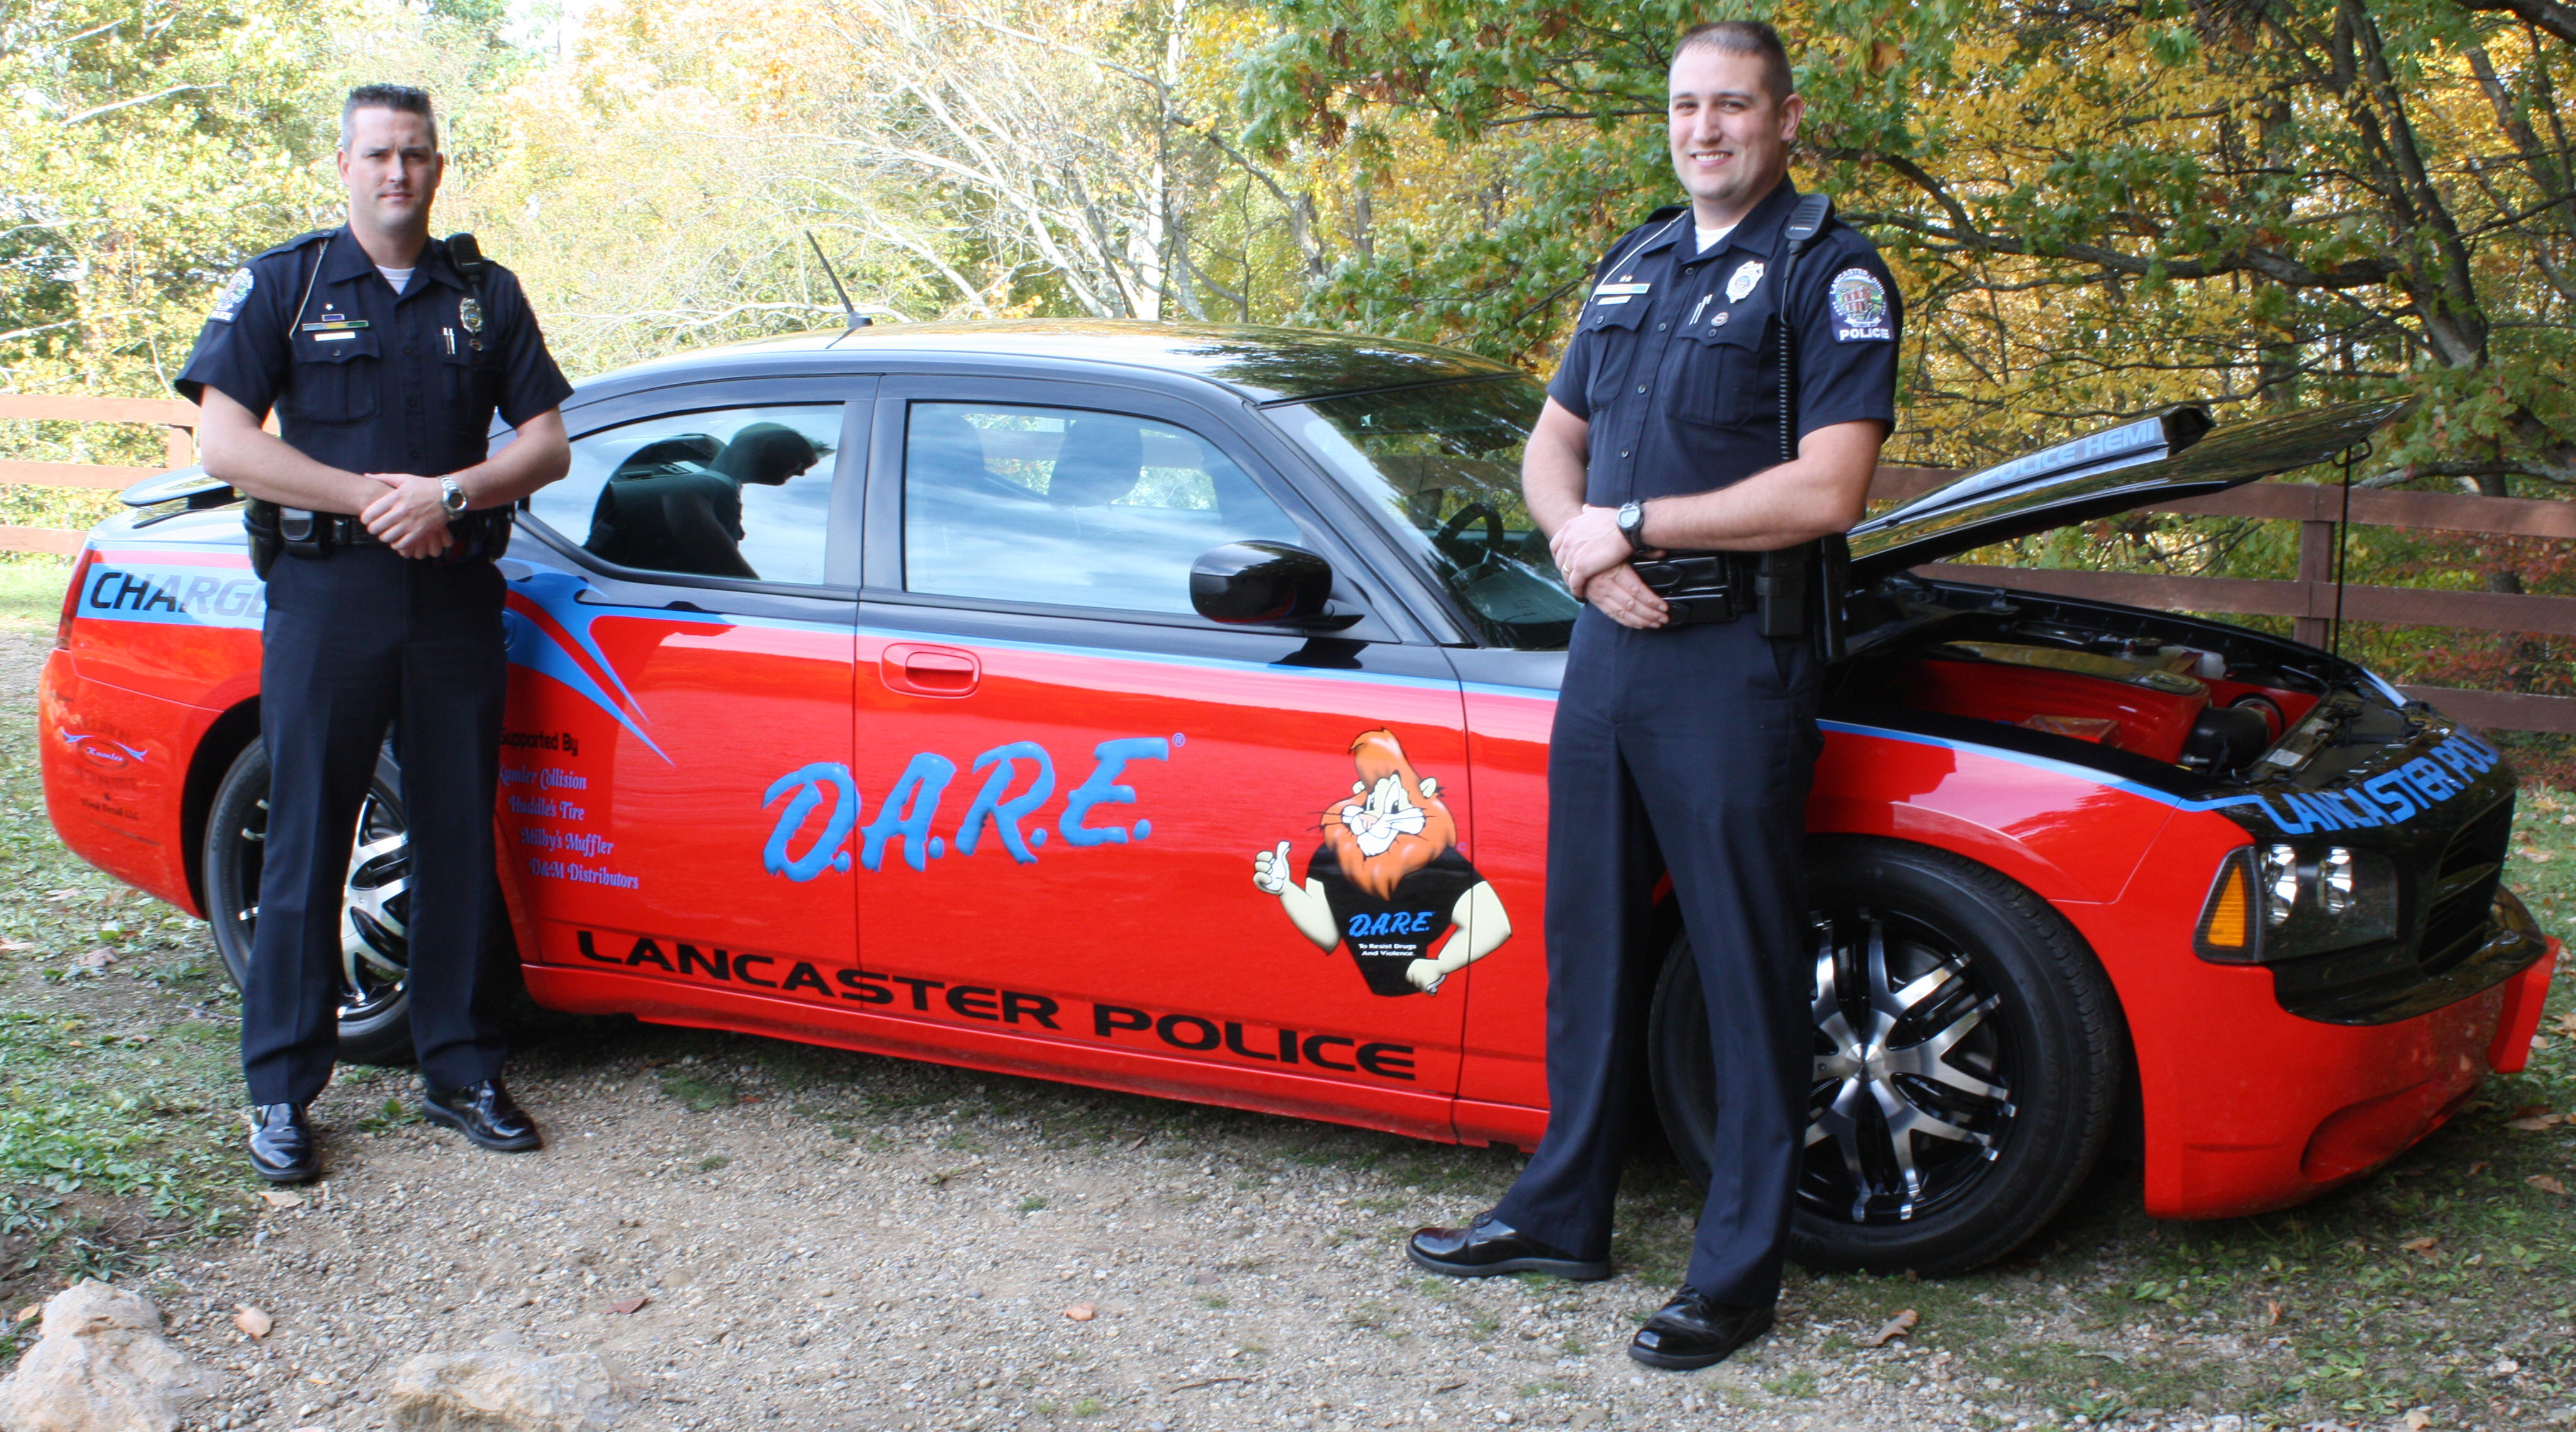 Officers Jim Marshall and Chris Caton with DARE Car